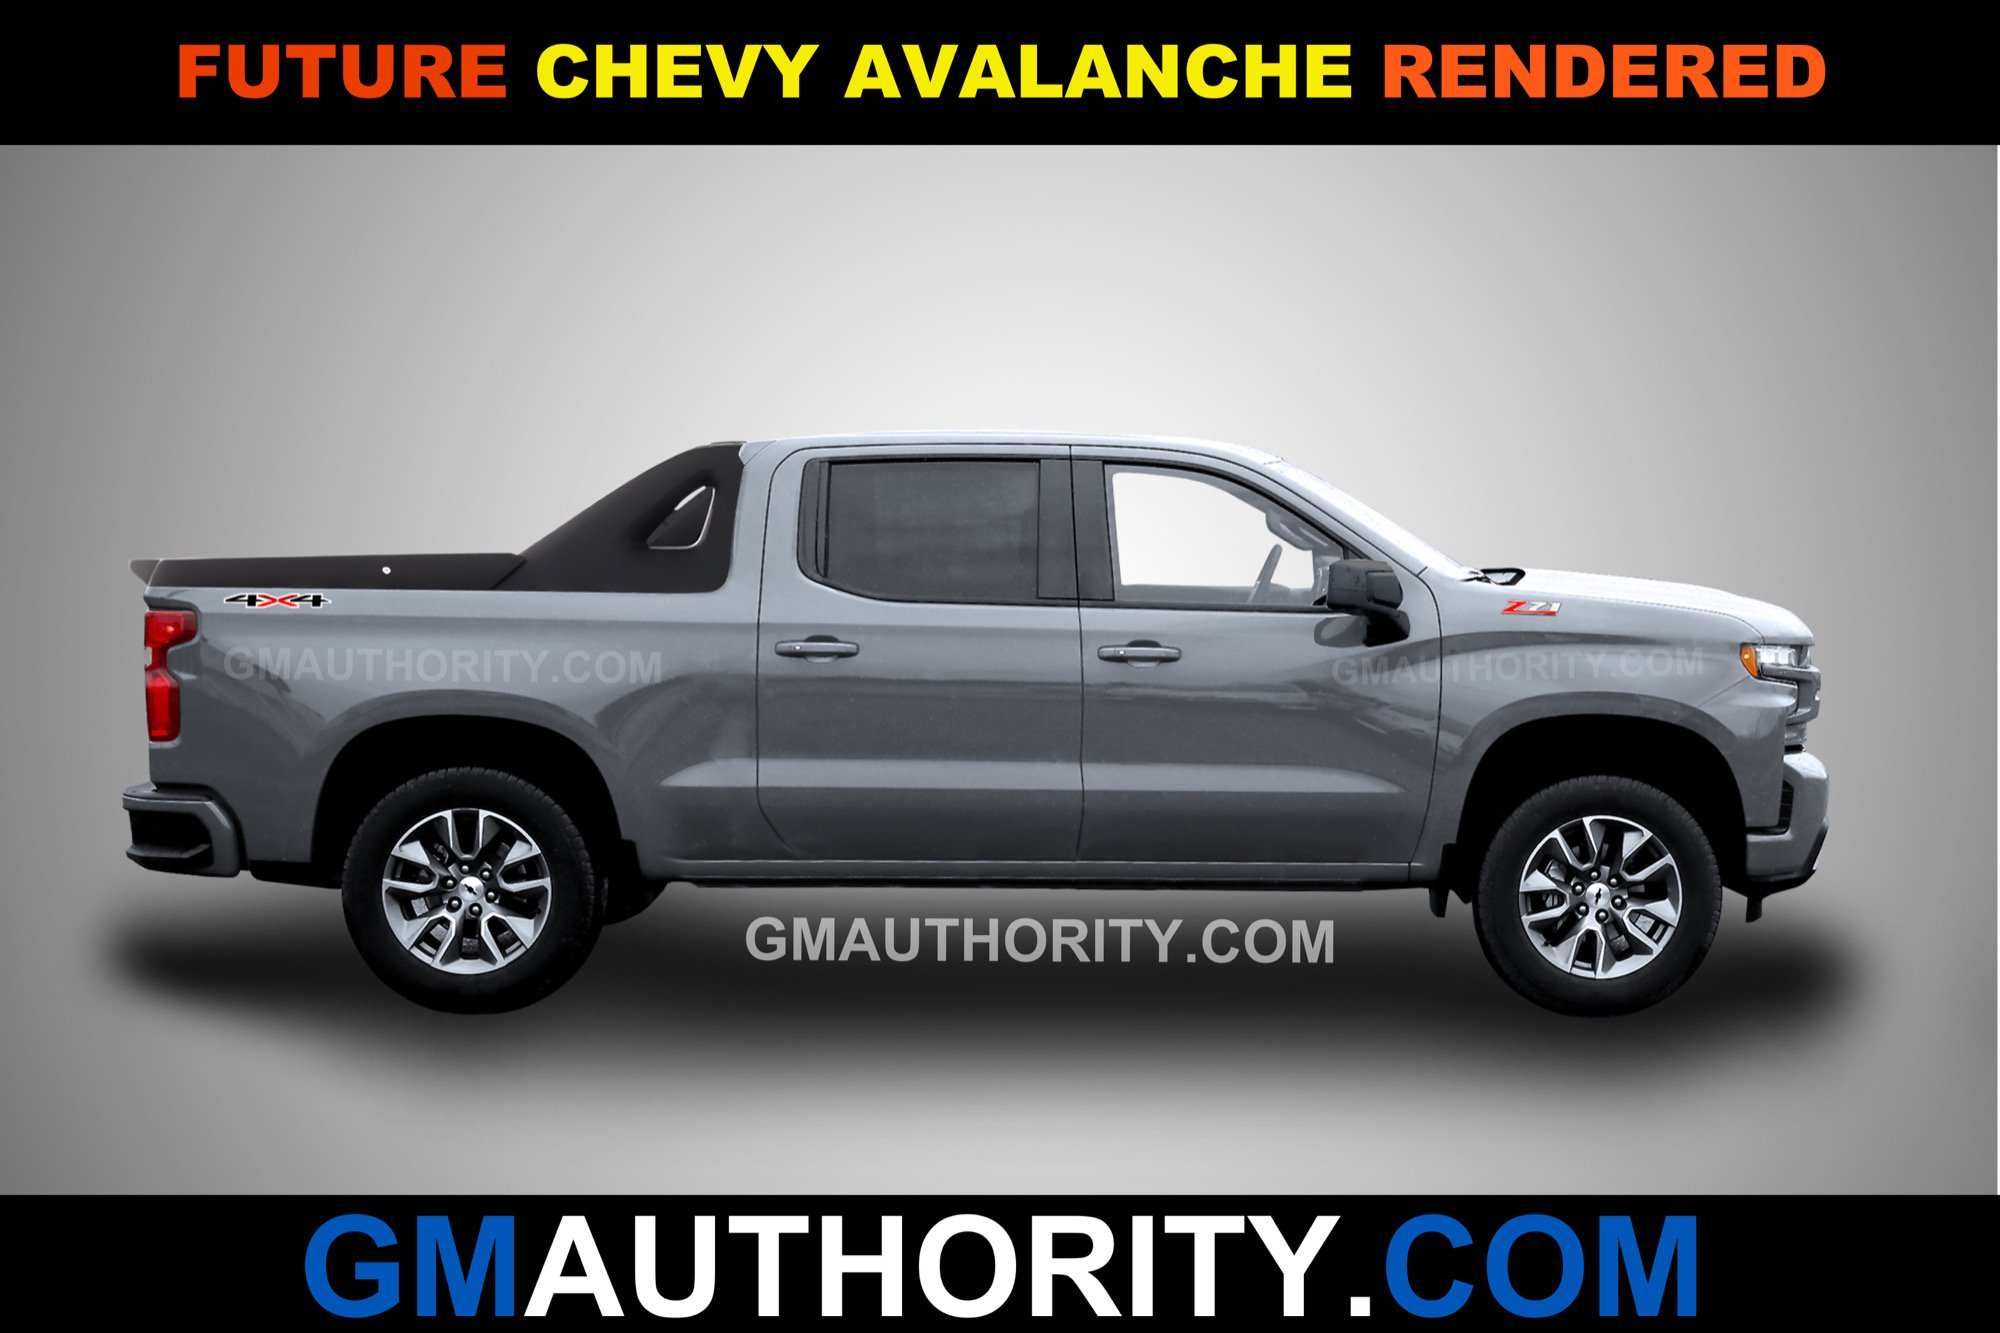 34 Gallery of 2019 Chevy Avalanche Photos with 2019 Chevy Avalanche